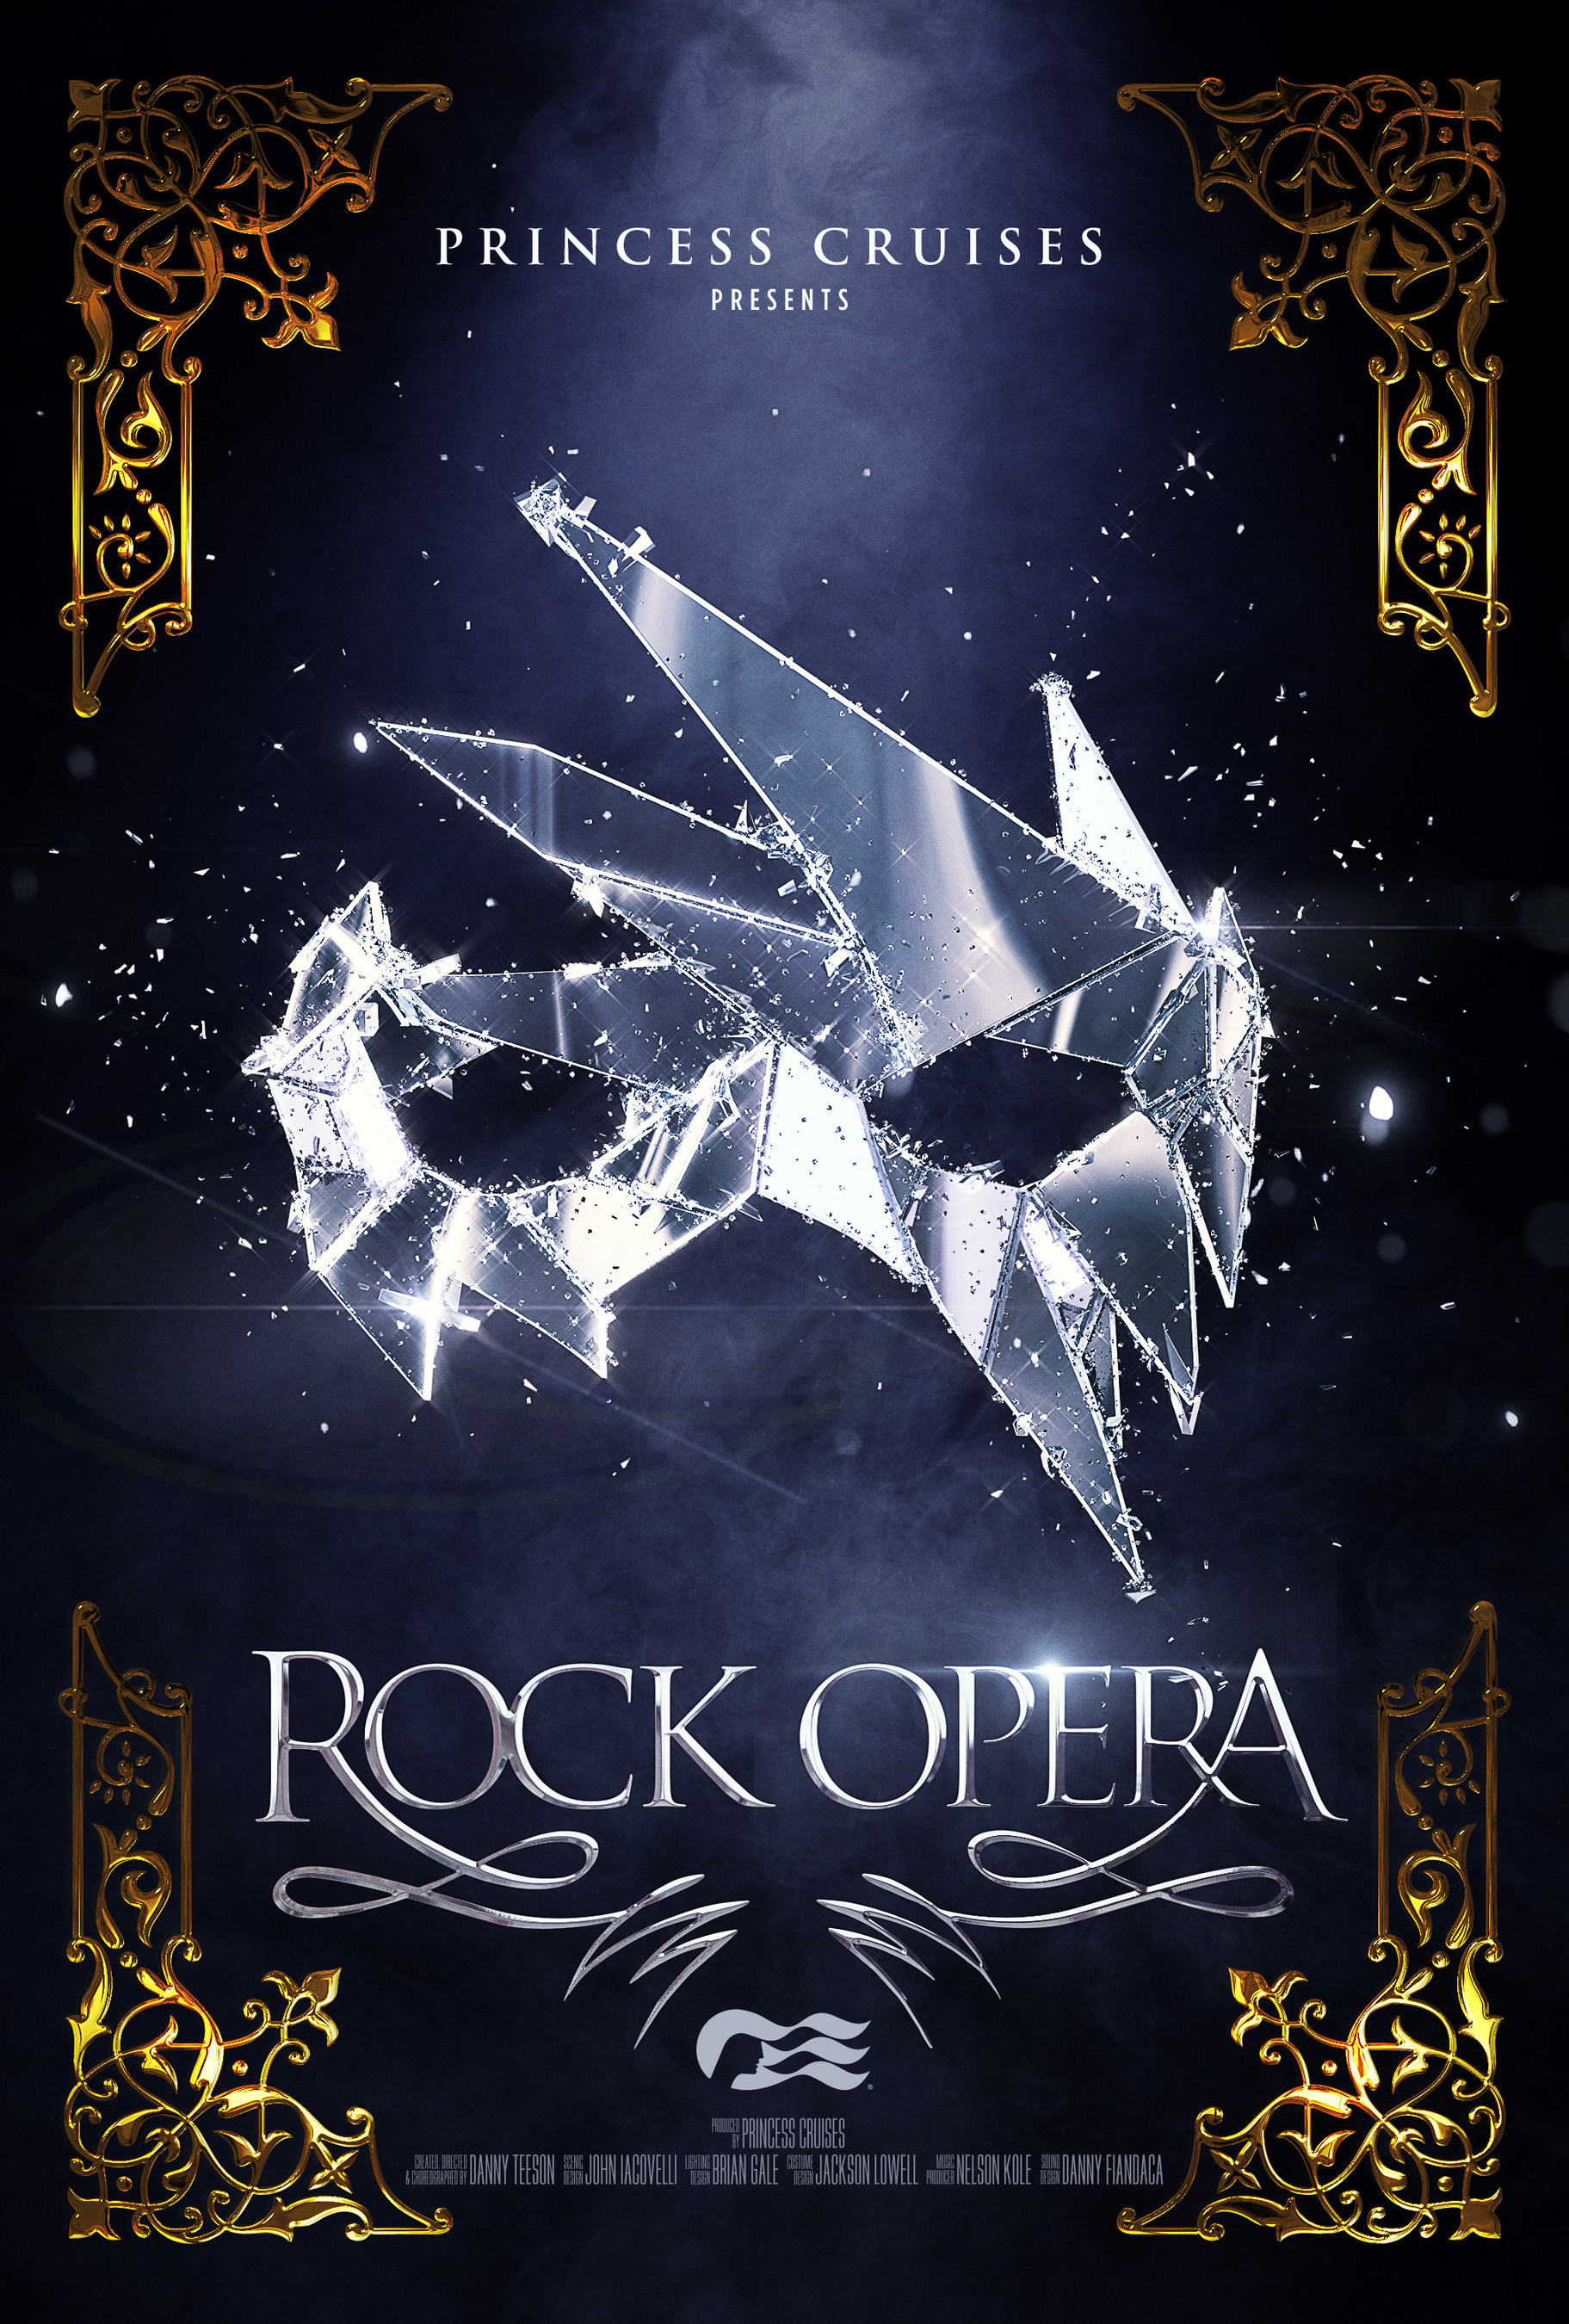 "High Fashion Meets Rock Music in Princess Cruises New Production Show ""Rock Opera"", debuting onboard Sky Princess & Enchanted Princess"